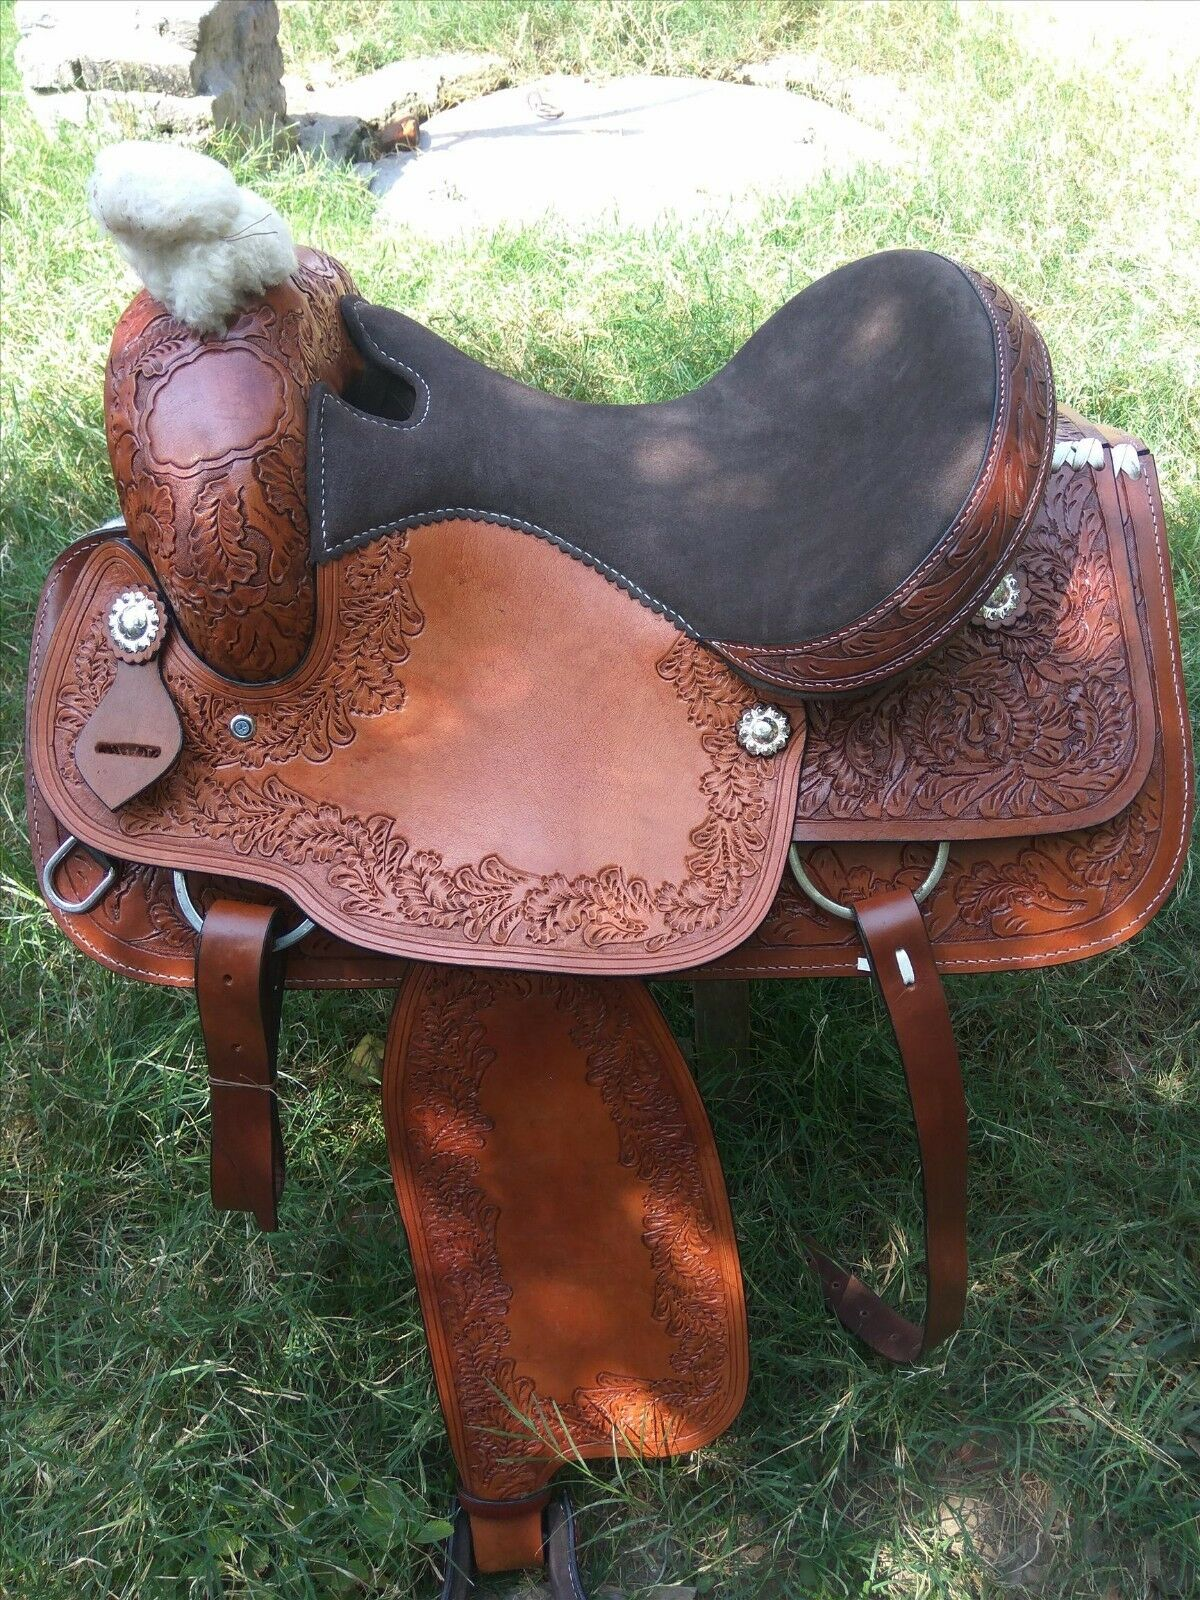 New  western Brown leather saddle size 14, 15, 16 inch  honest service